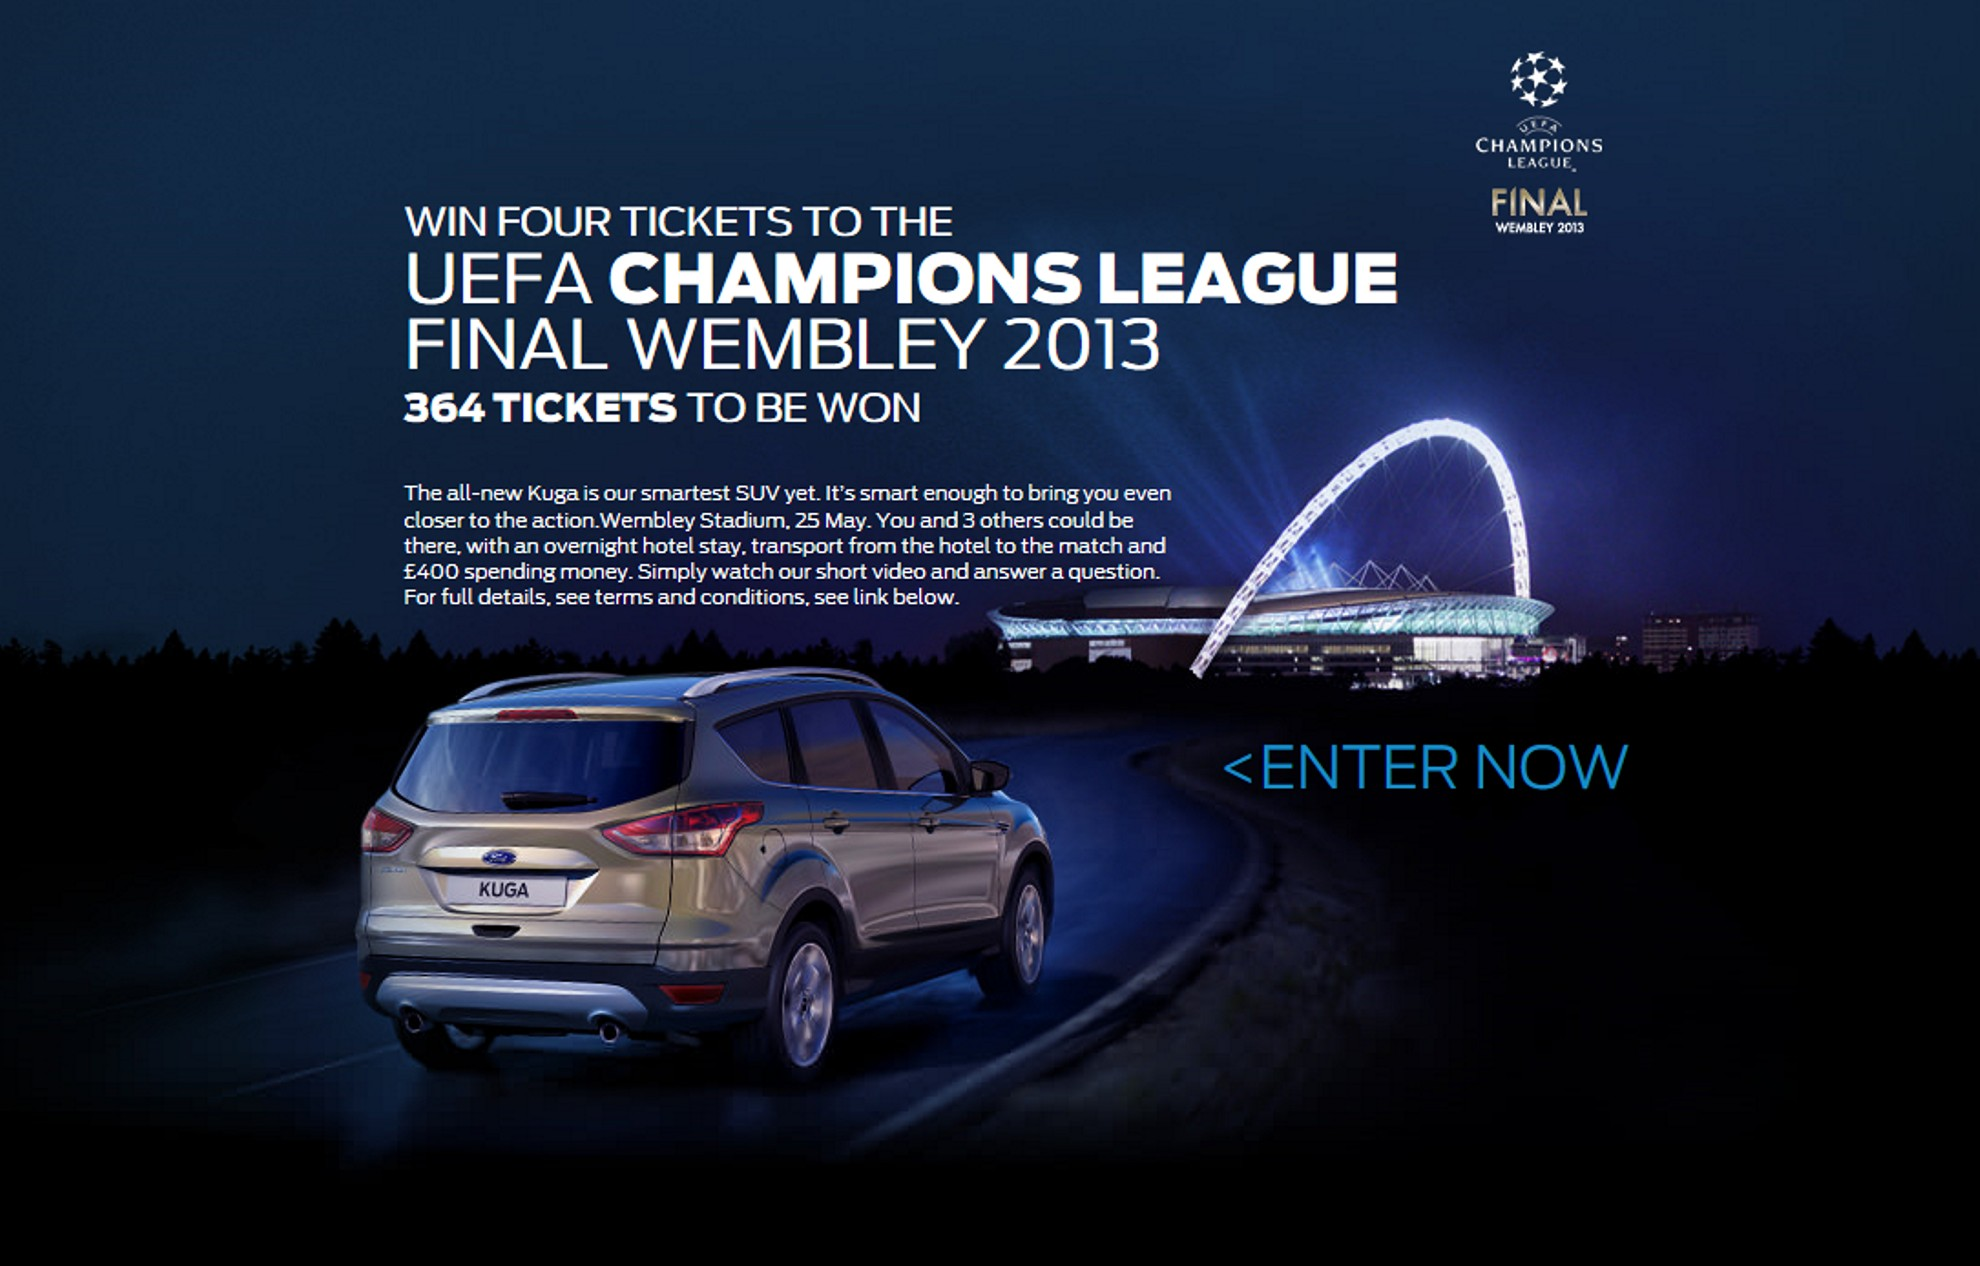 Ford UEFA Champions League